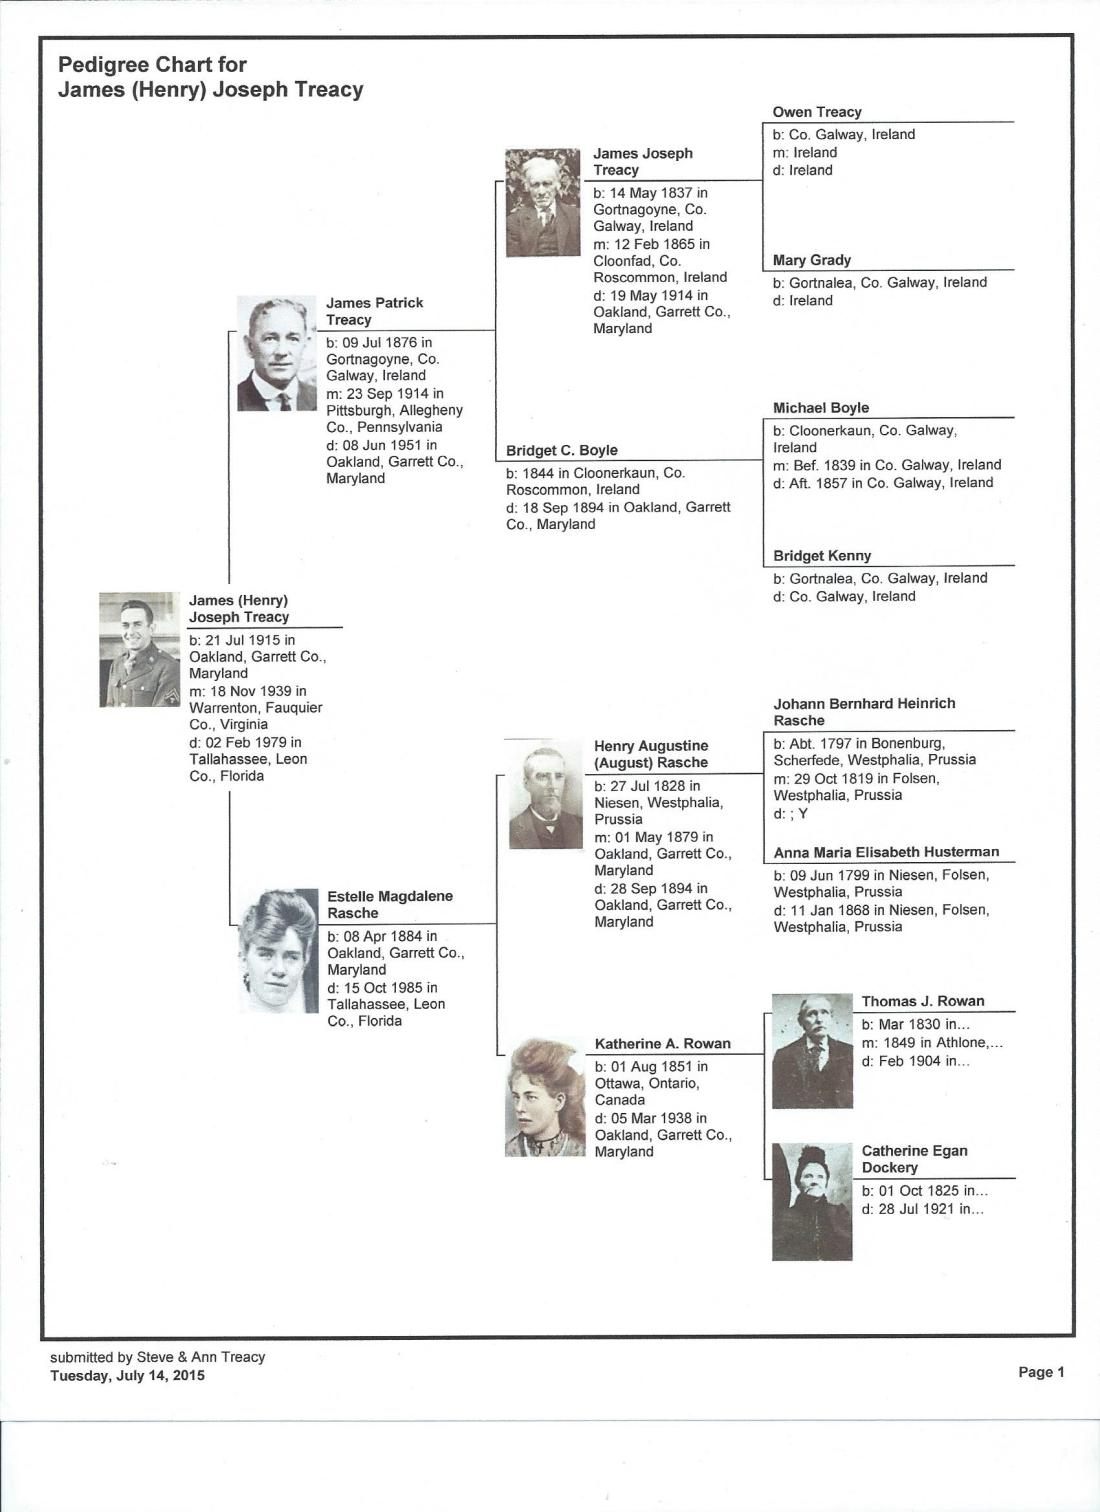 pedigree chart for James (Henry) Joseph Treacy